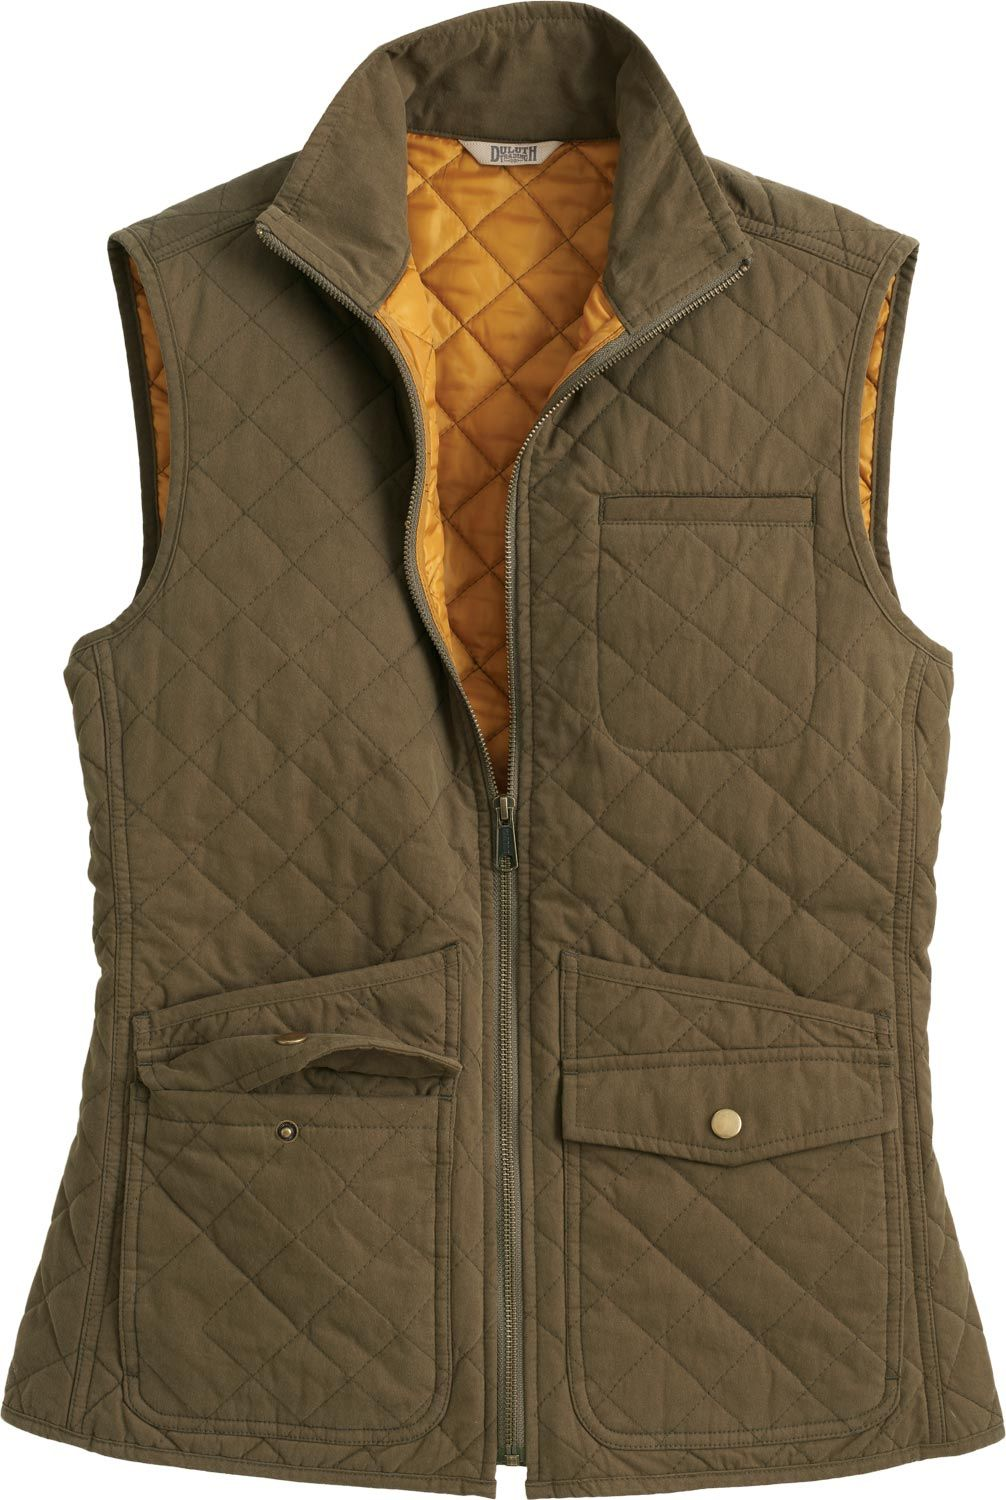 48519c86937 This Cortland Quilted Vest from Duluth Trading Company is packed with a  peck of feel-good features. From moisture-repelling brushed nylon exterior  to cozy ...